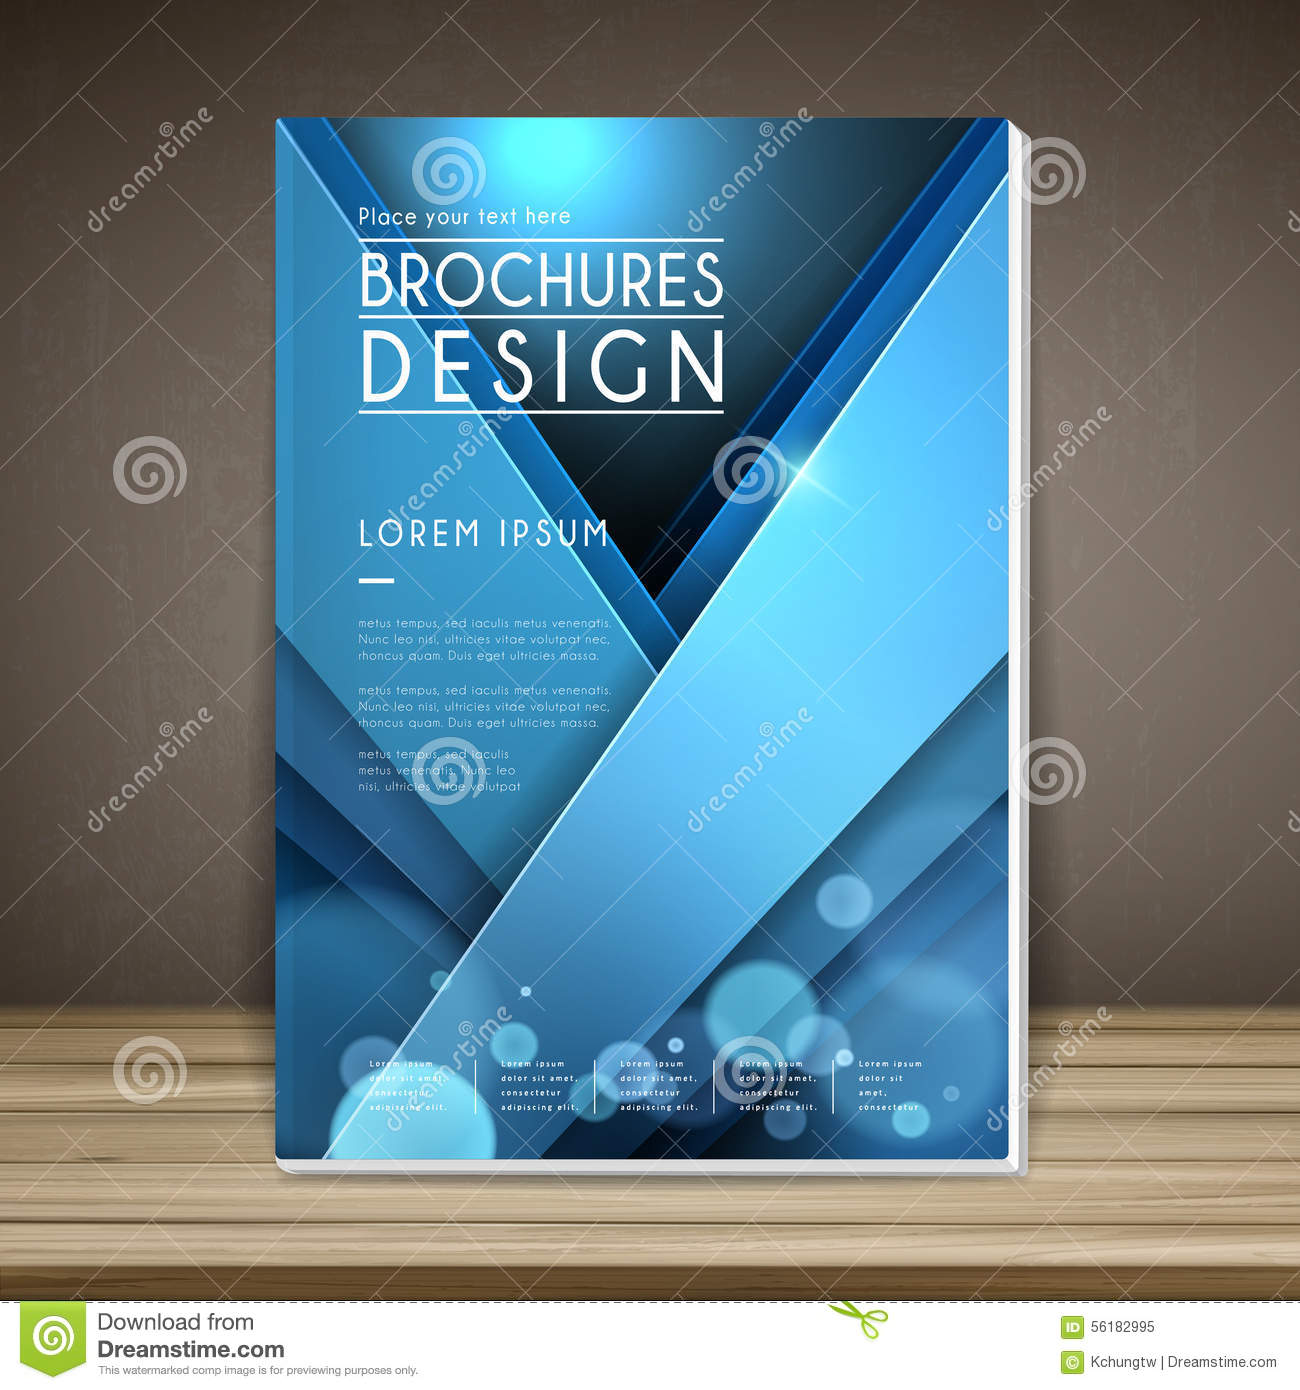 Book Cover Design Elements : Elegant book cover template design stock vector image